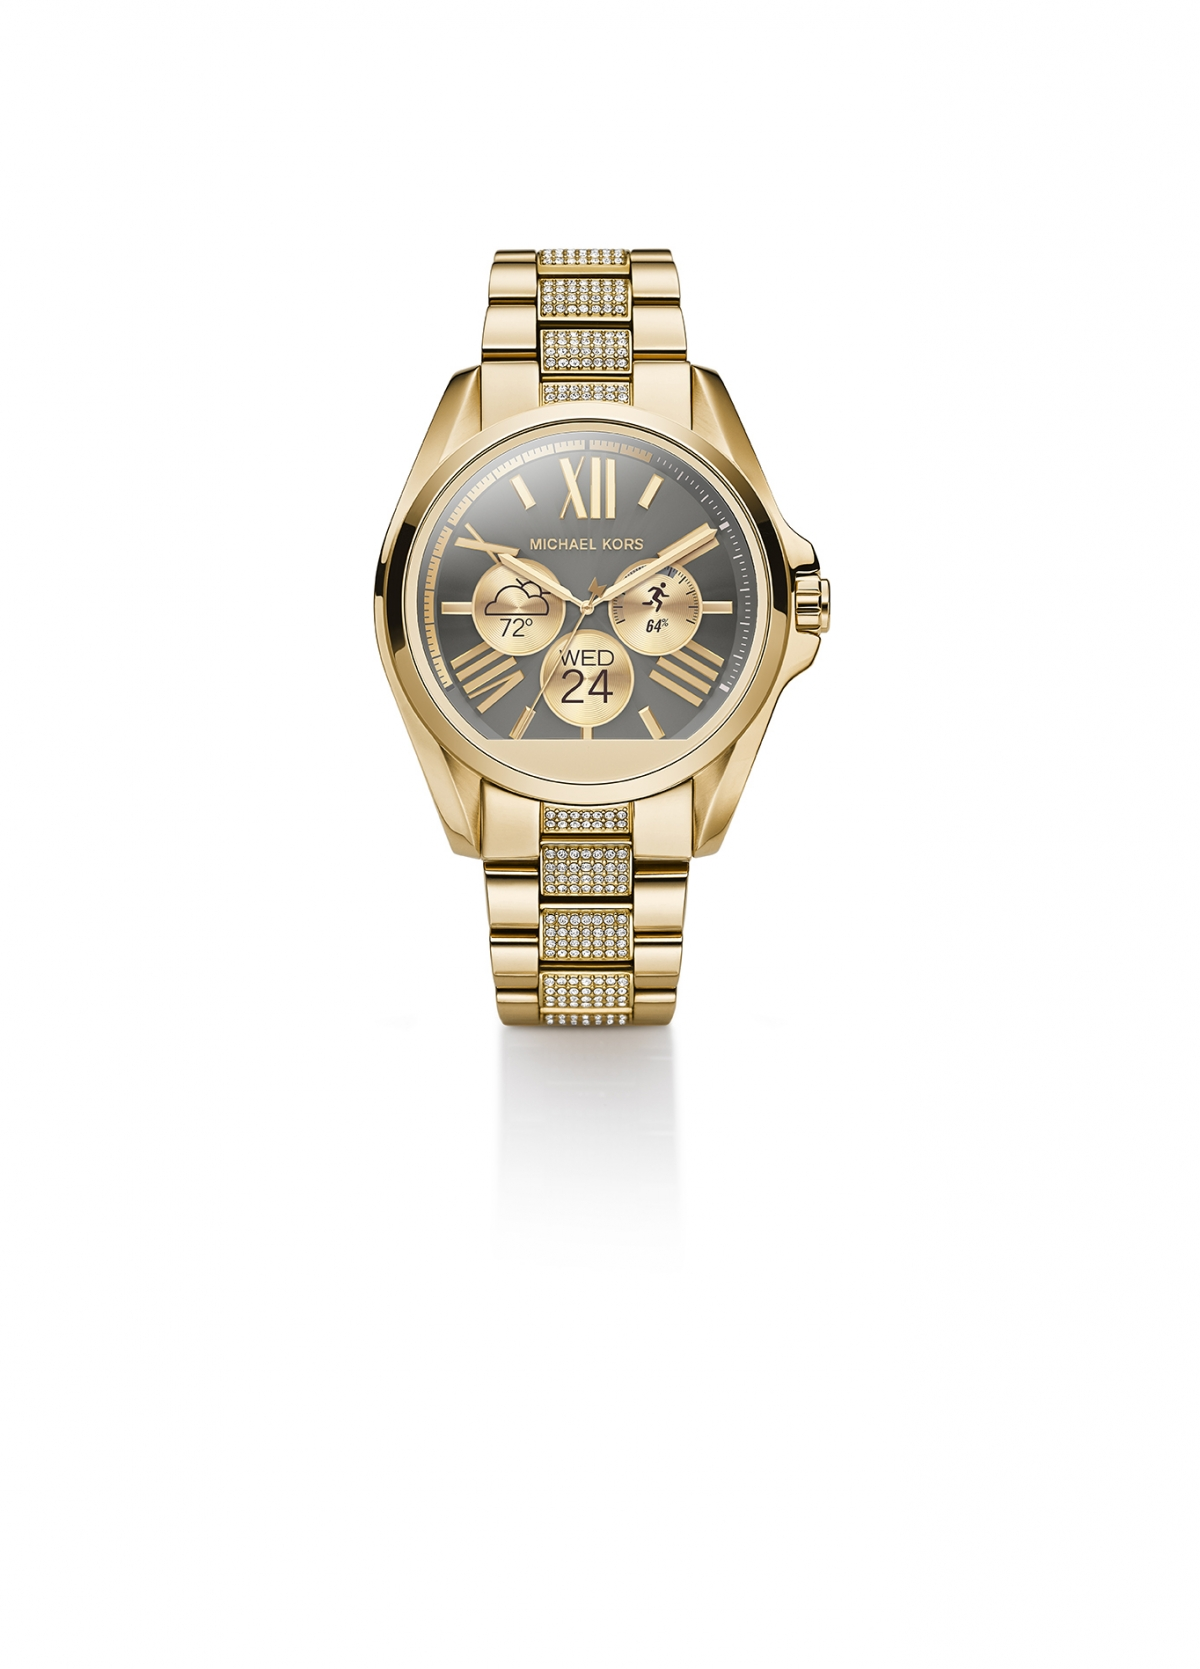 Michael Kors fashion accessories to soon include a ...